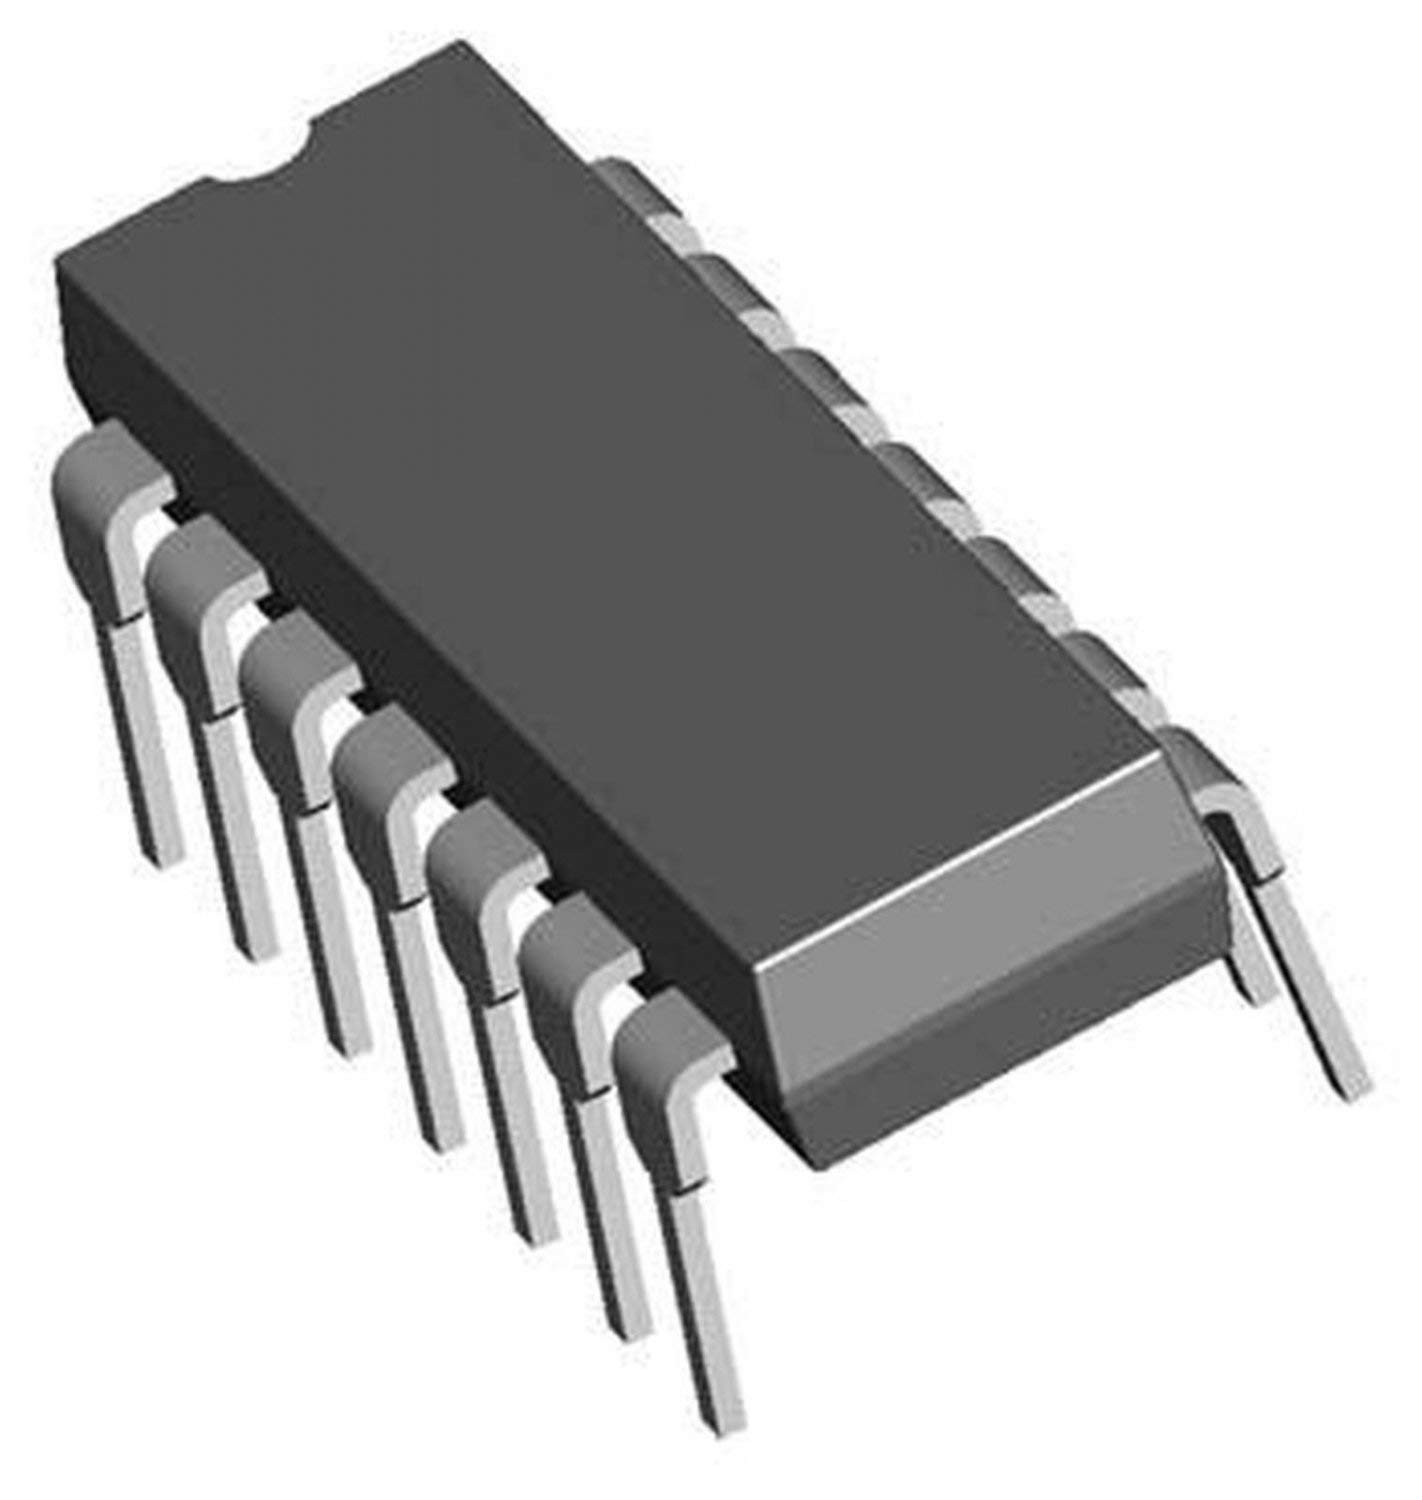 ON Semiconductor MC74ACT08NG 74ACT08 Quad 2-Input and Gate 14-Pin DIP Breadboard-Friendly Pack of 1